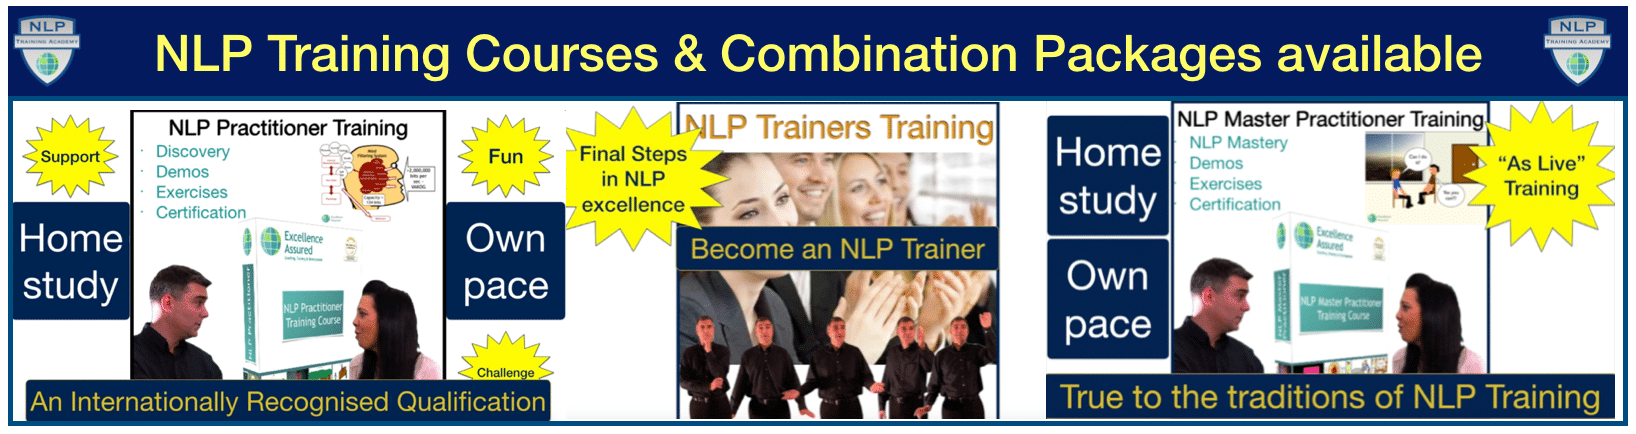 NLP Training Courses & Combination Packages at Excellence Assured NLP Training Academy